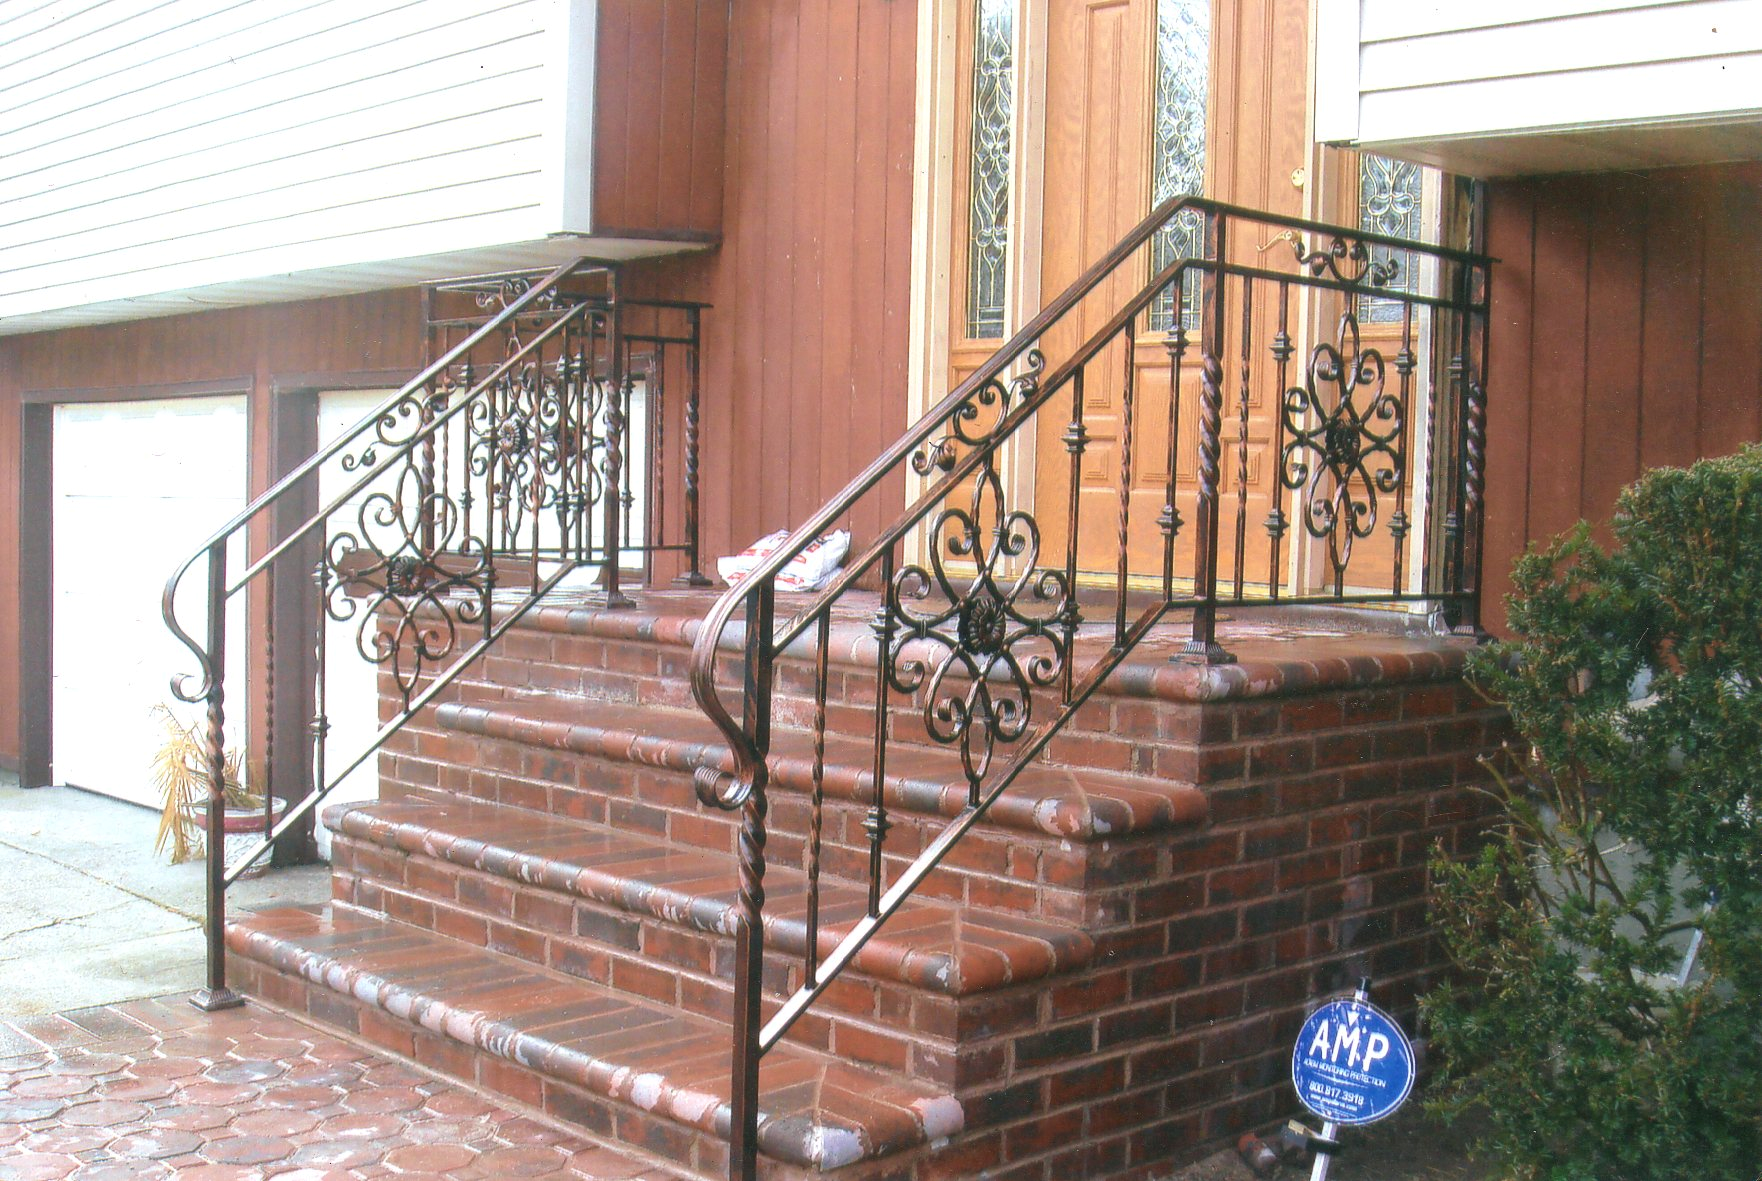 Brickwork with antique finishes.